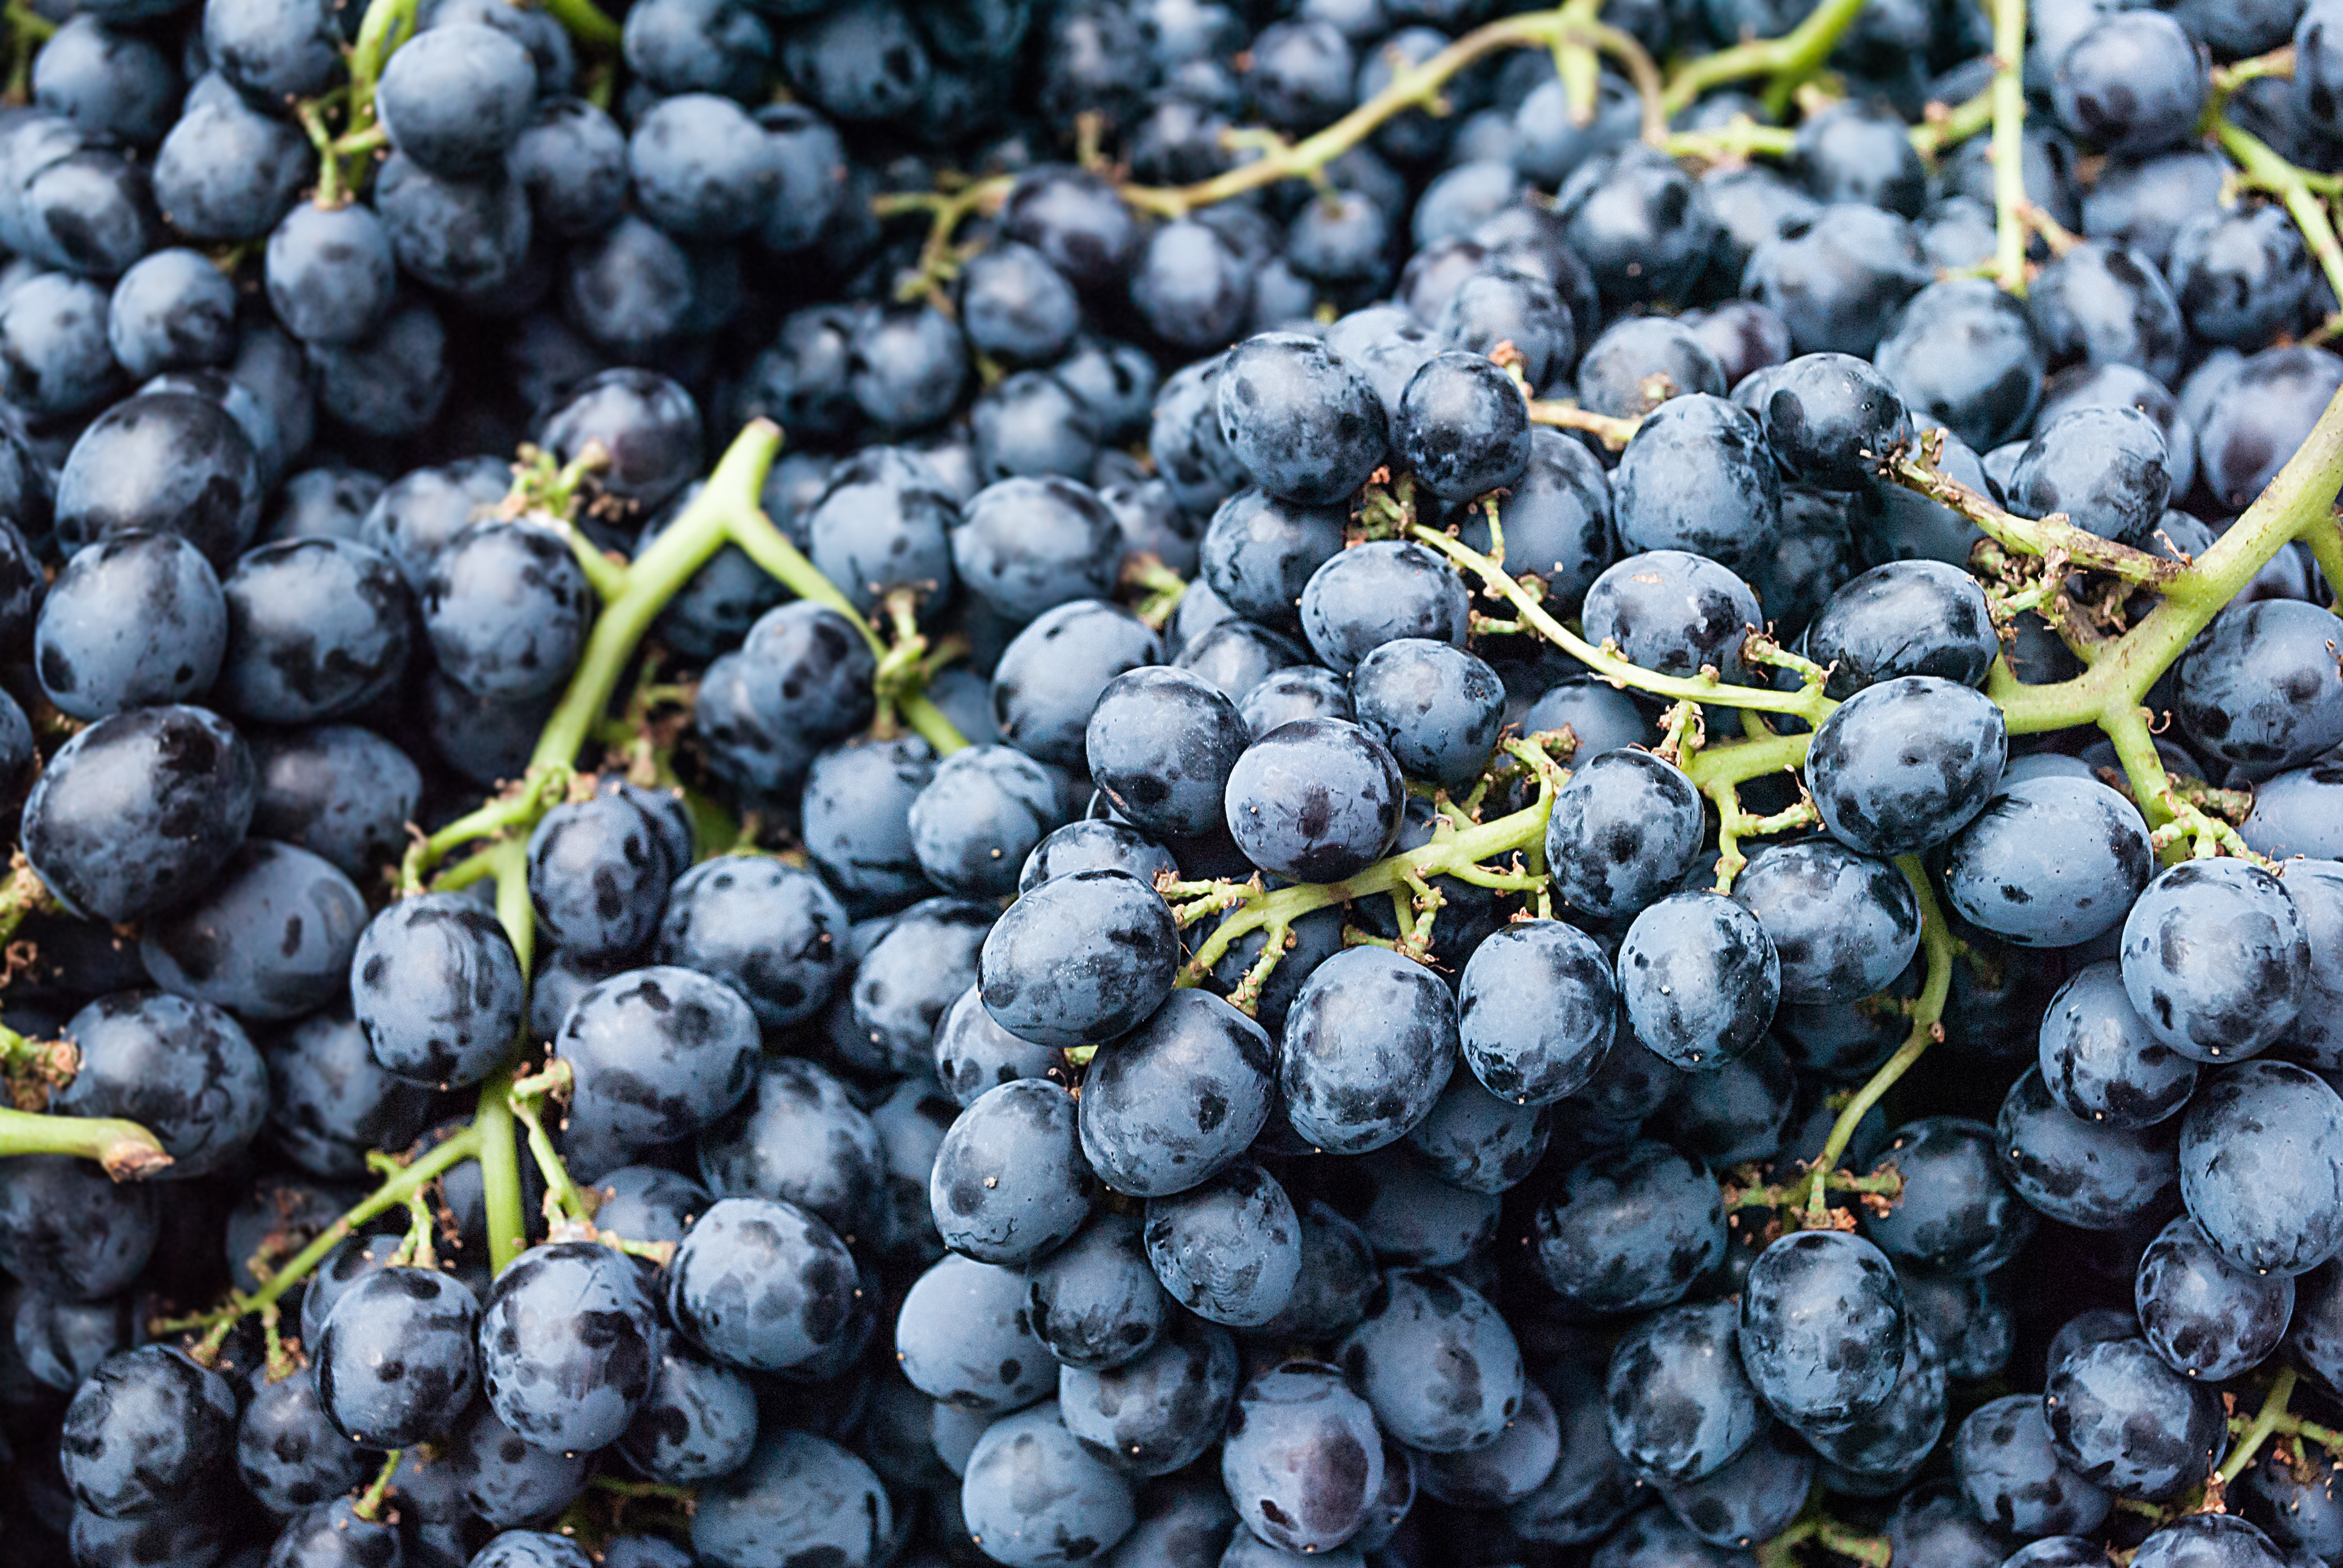 How to Clean Grapes Treated With Sulfur Dioxide   LEAFtv